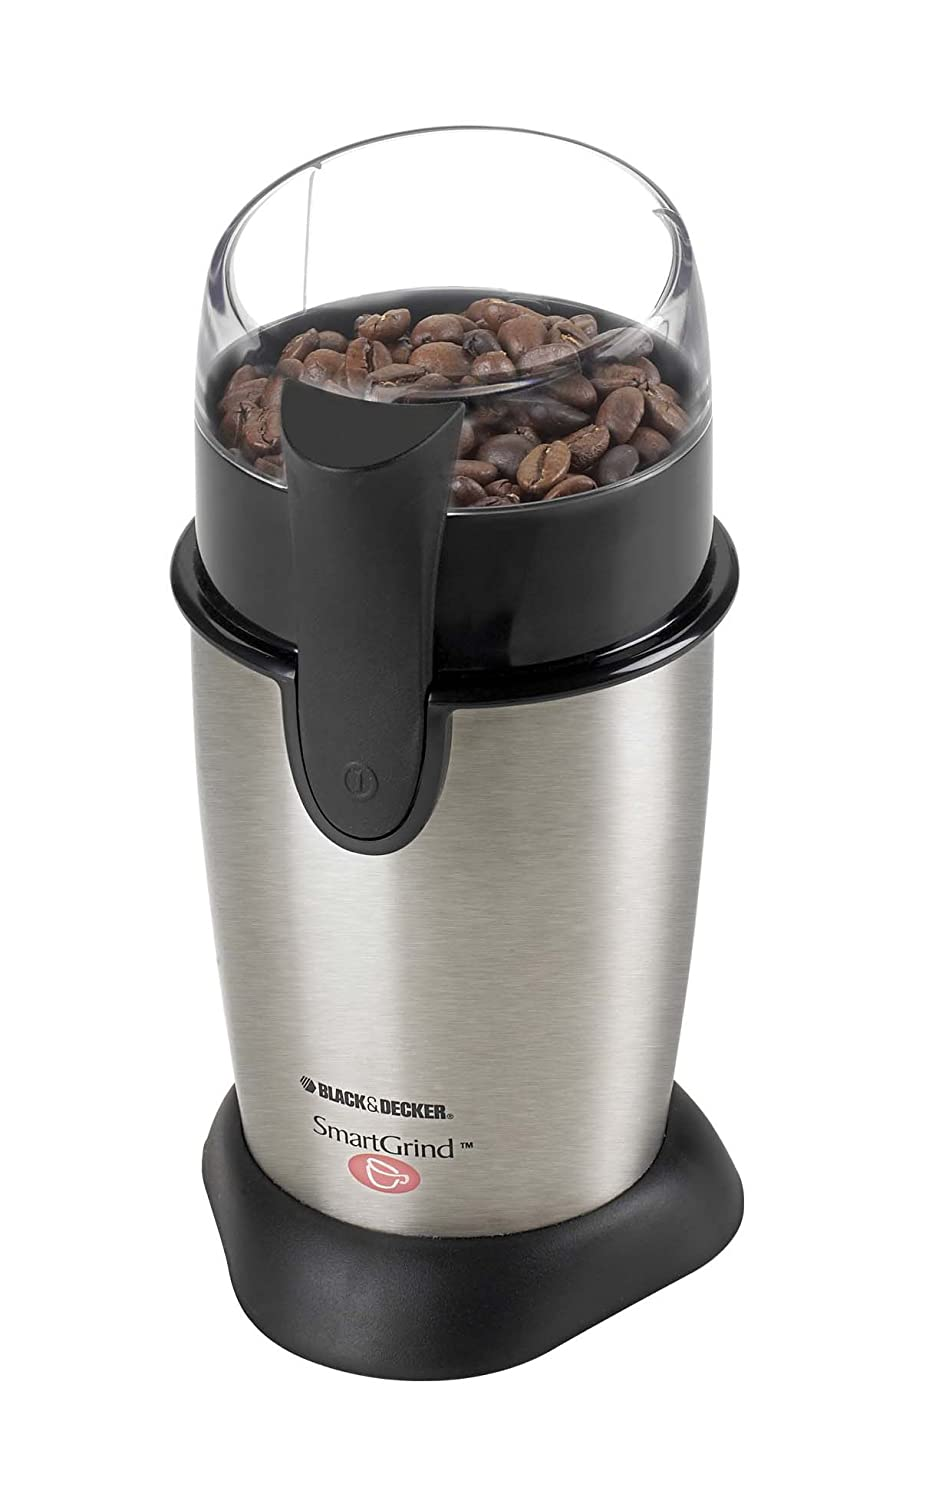 BLACK+DECKER Coffee Grinder, Stainless Steel, CBG100SC Black & Decker